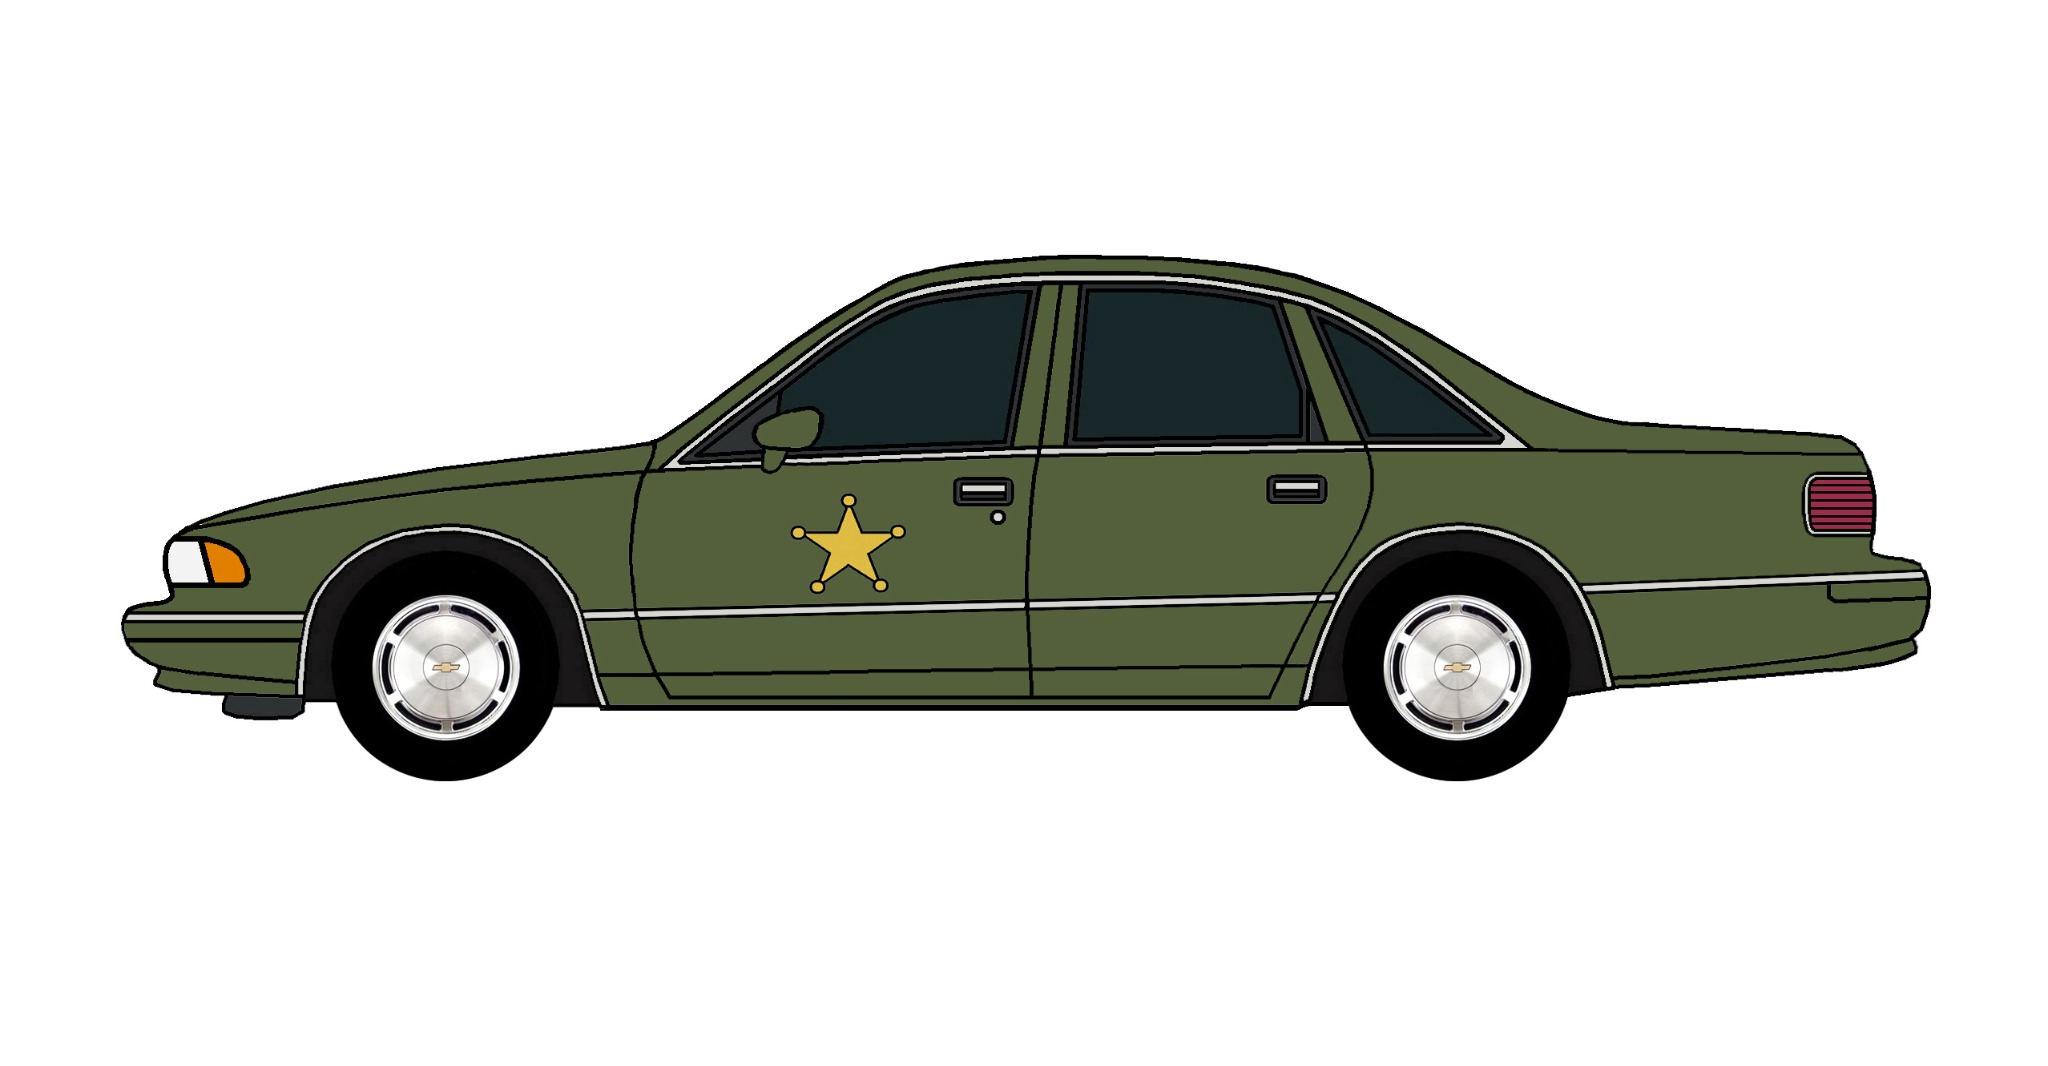 1994 Chevy Caprice Police Car ARMY GREEN